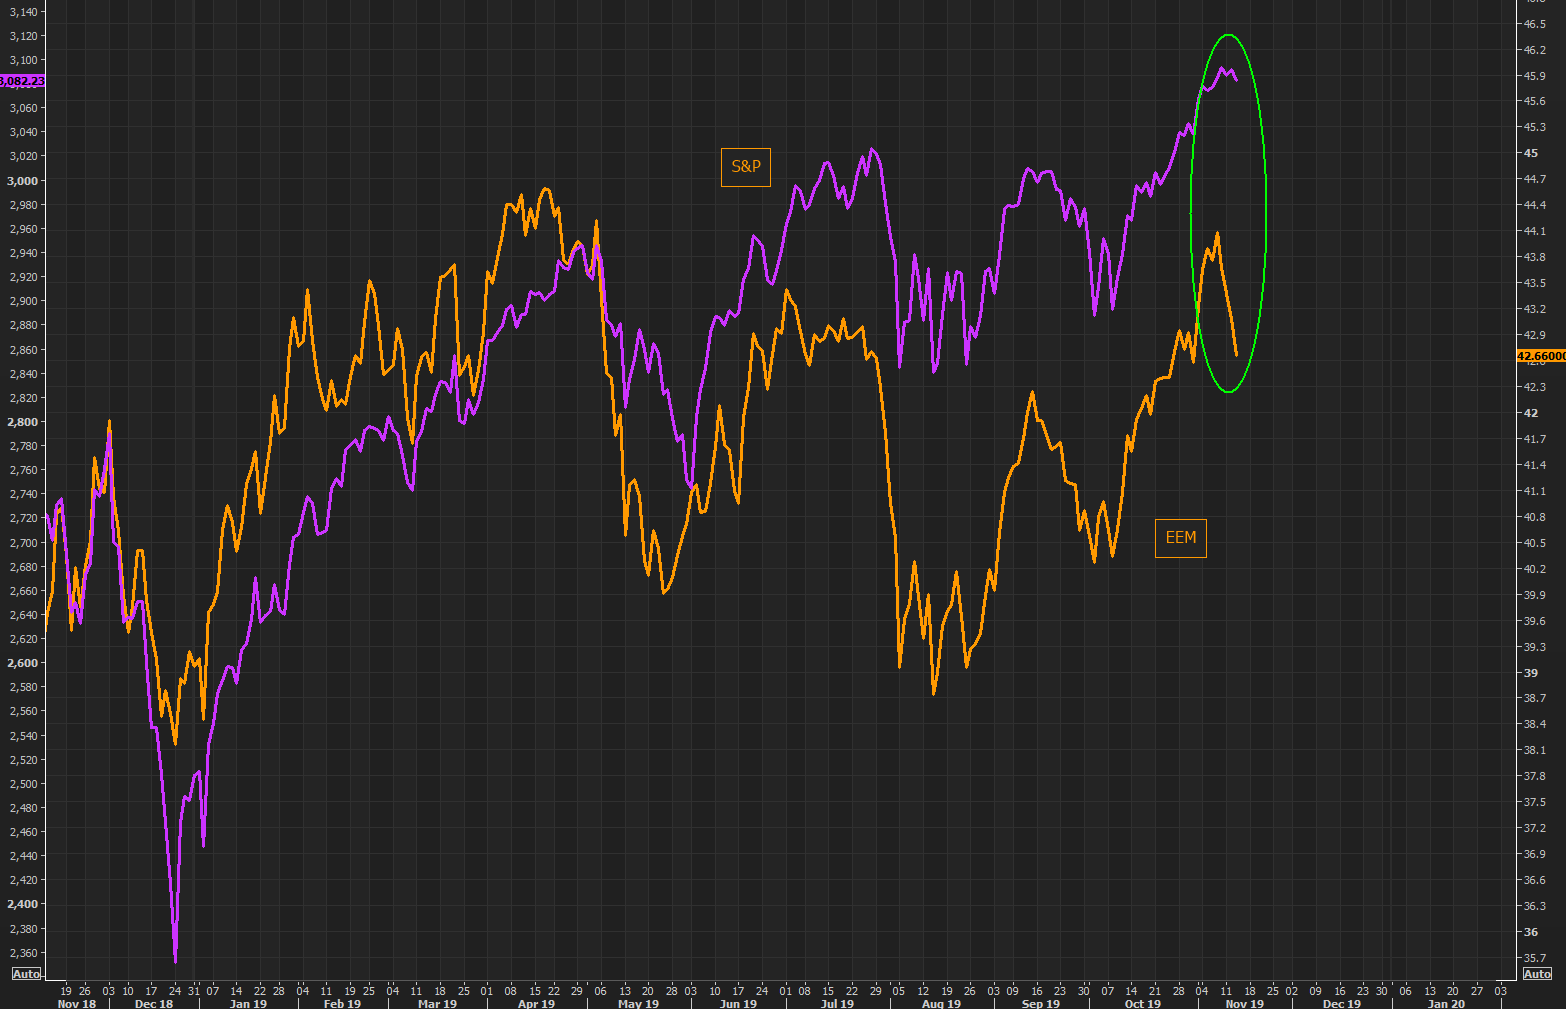 Emerging market, EM, continues fading - the gap versus S&P widening by the day